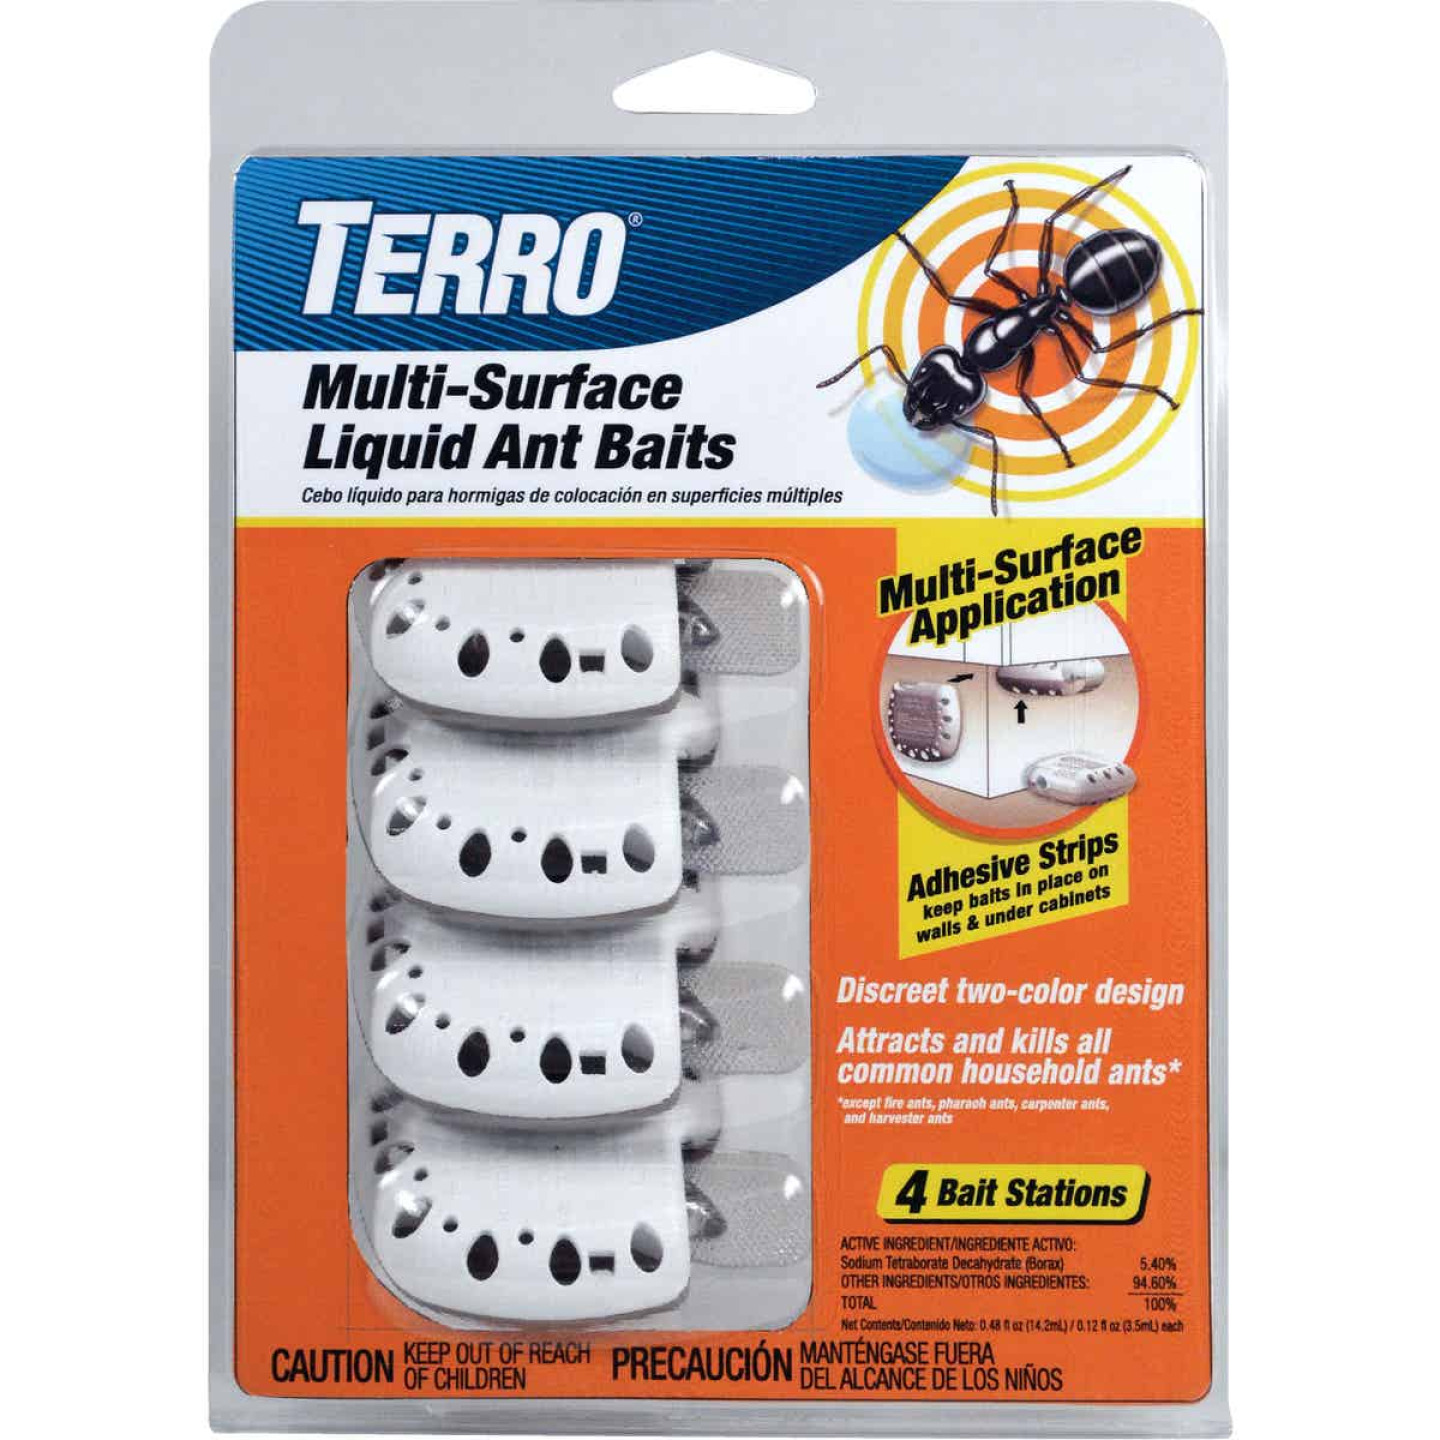 Terro Multi-Surface Liquid Ant Bait Station (4-Pack) Image 1